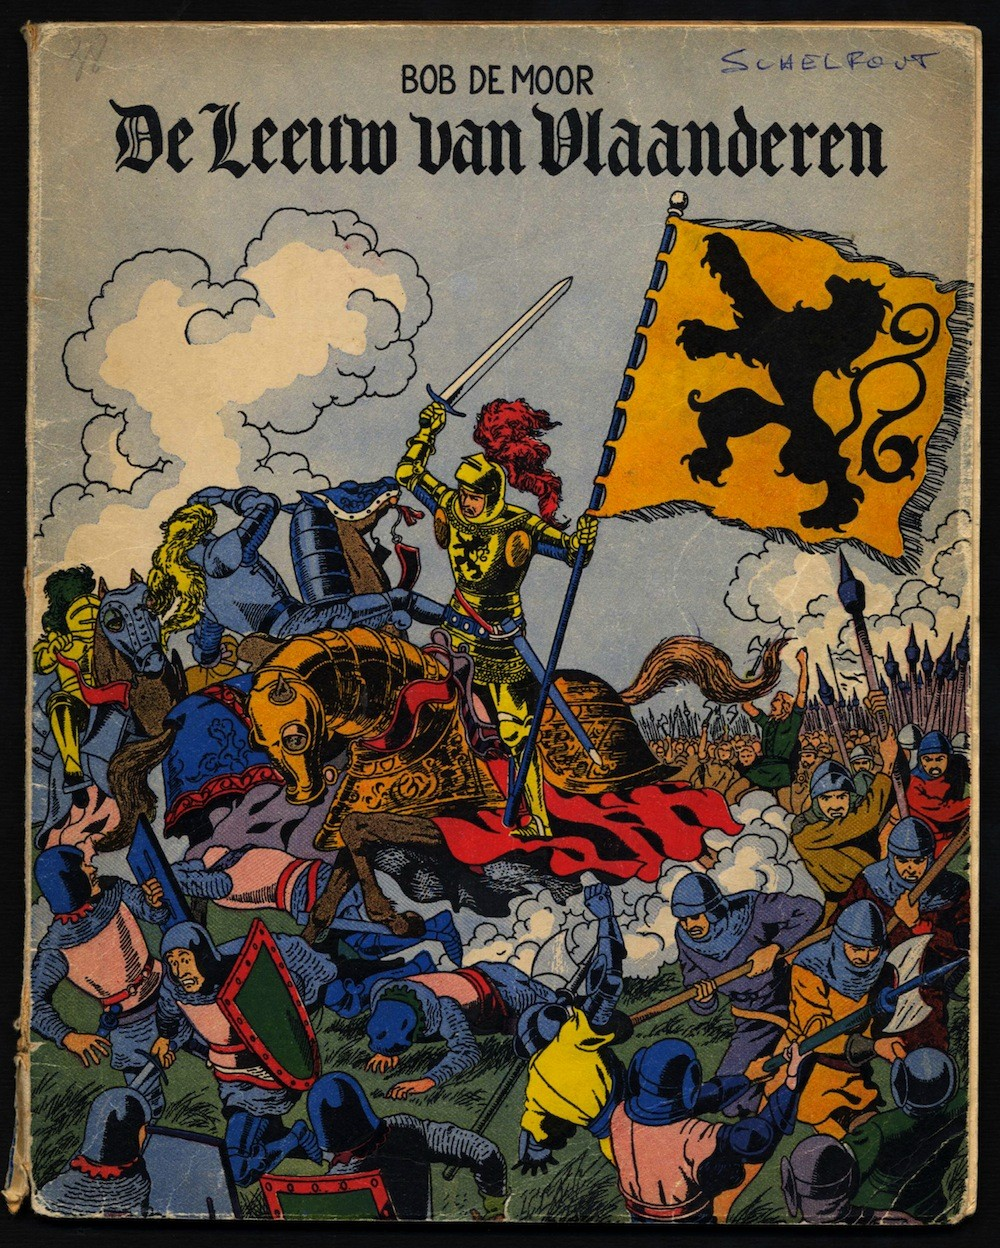 'De Leeuw van Vlaanderen' in a reworked version by Johan De Moor